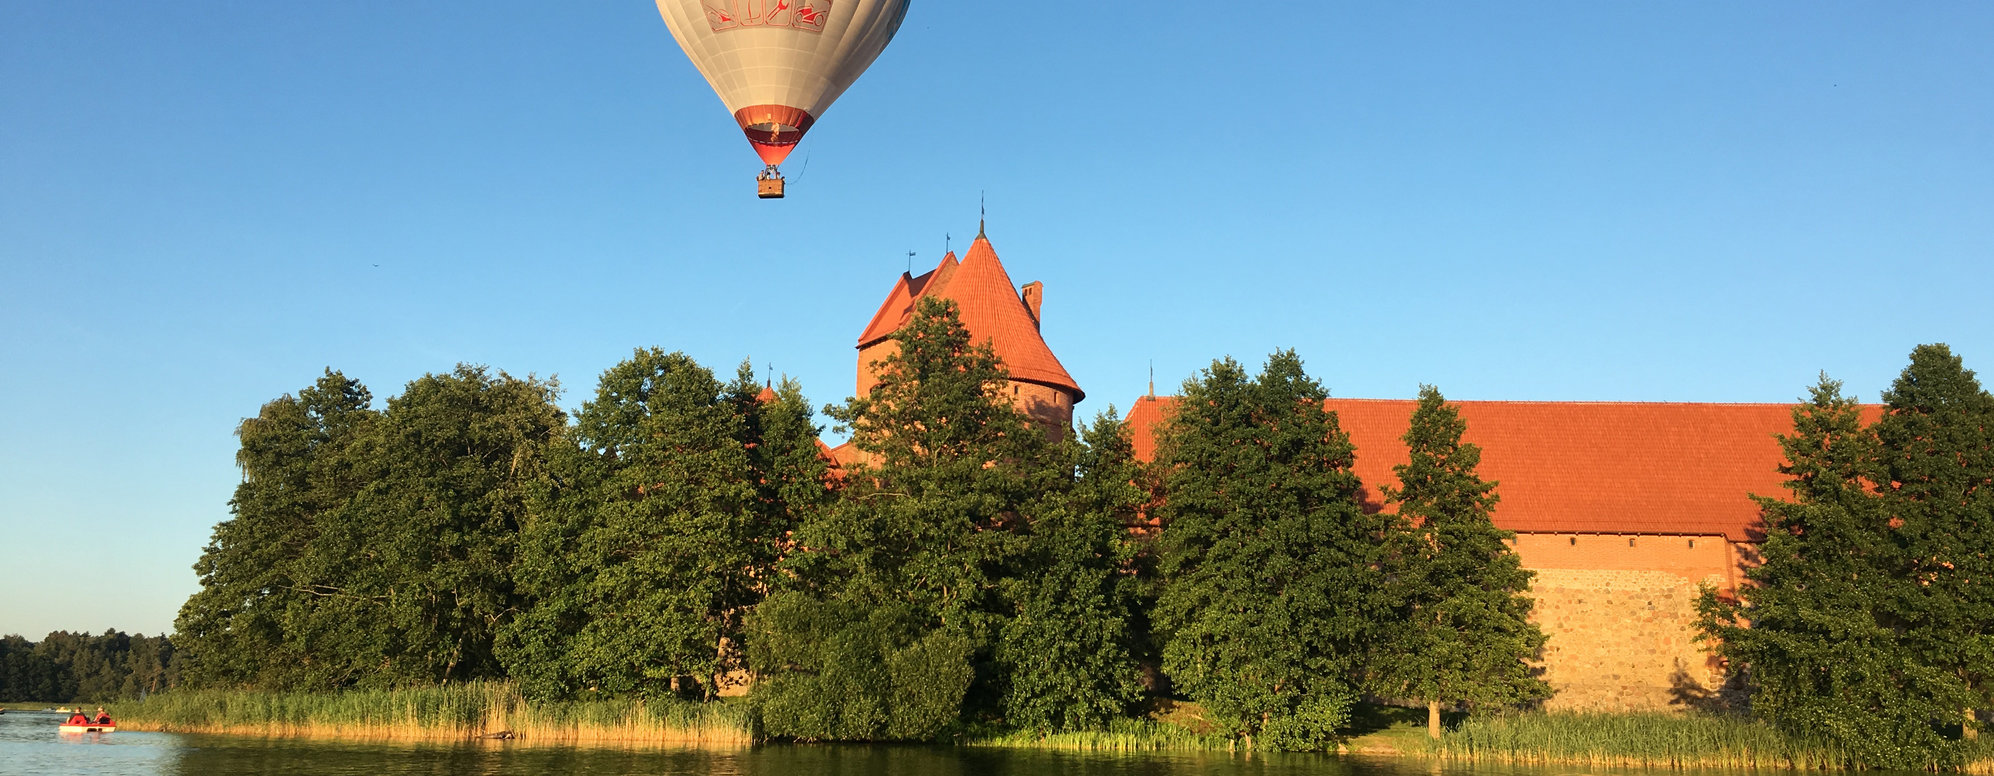 Hot air balloon tours in Vilnius